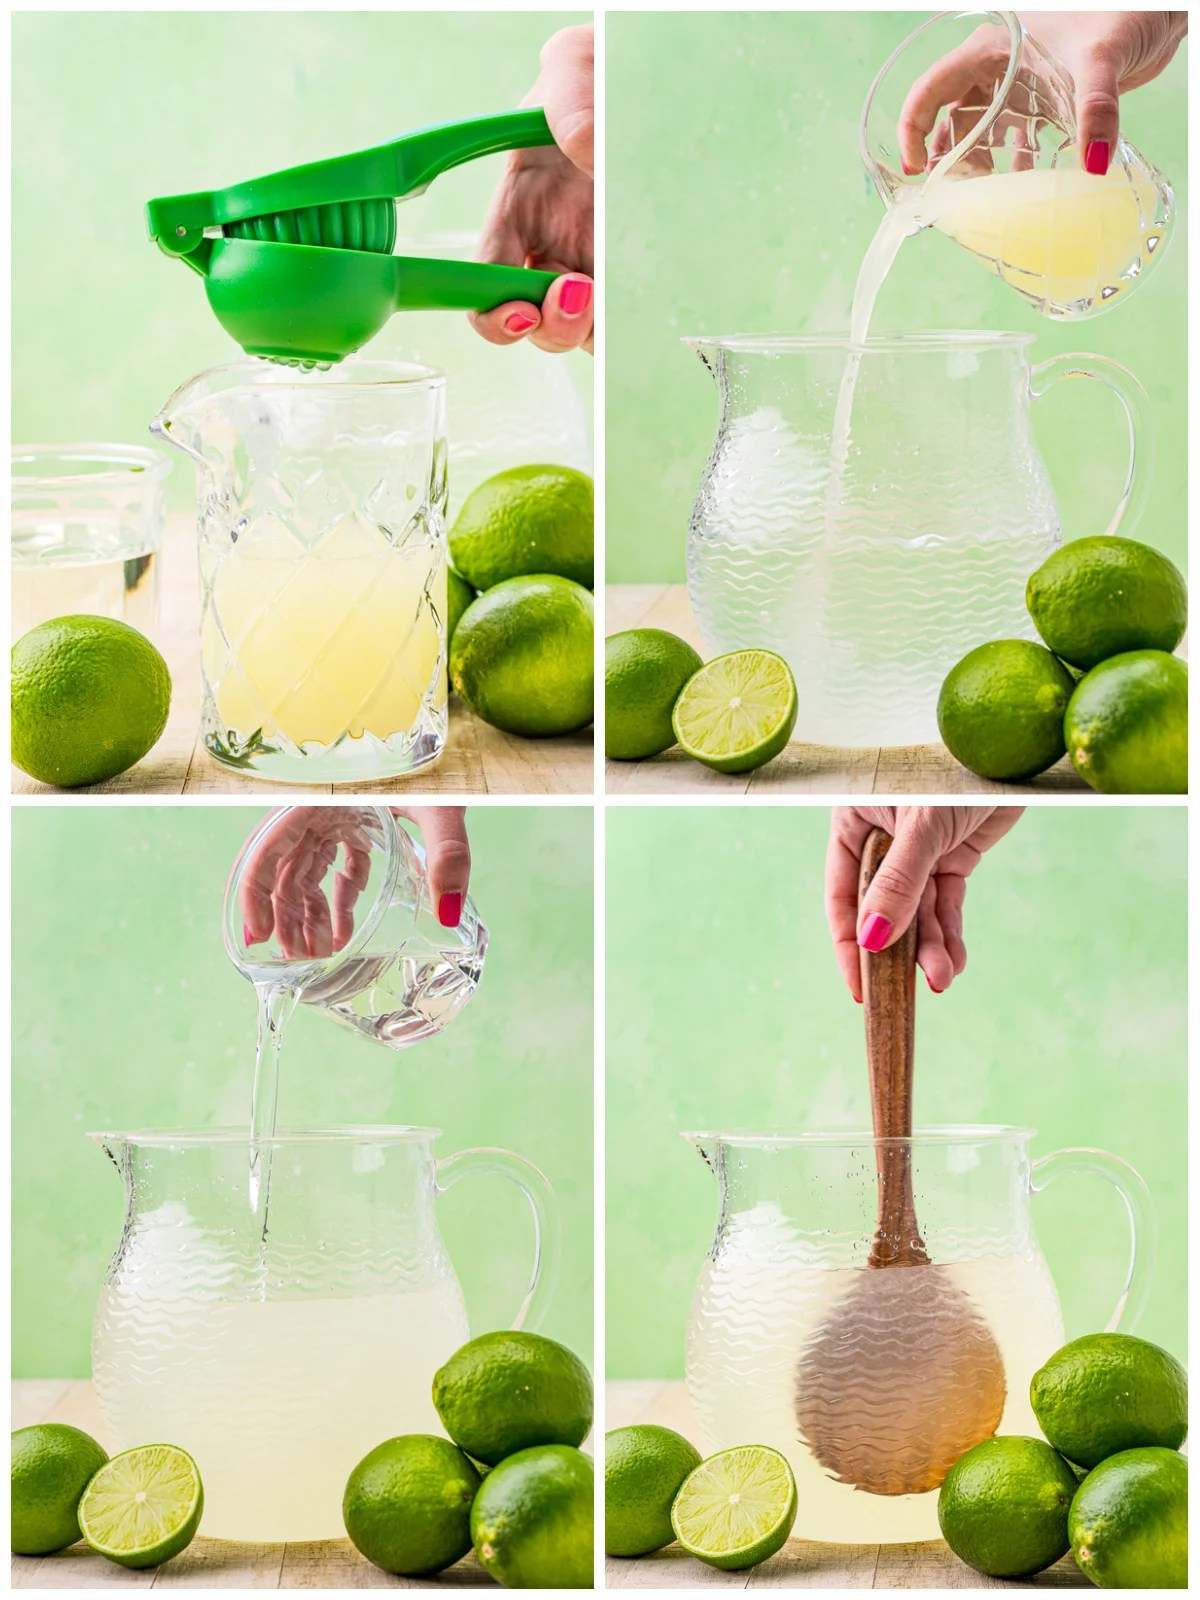 Step by step photos on how to make a Limeade Recipe